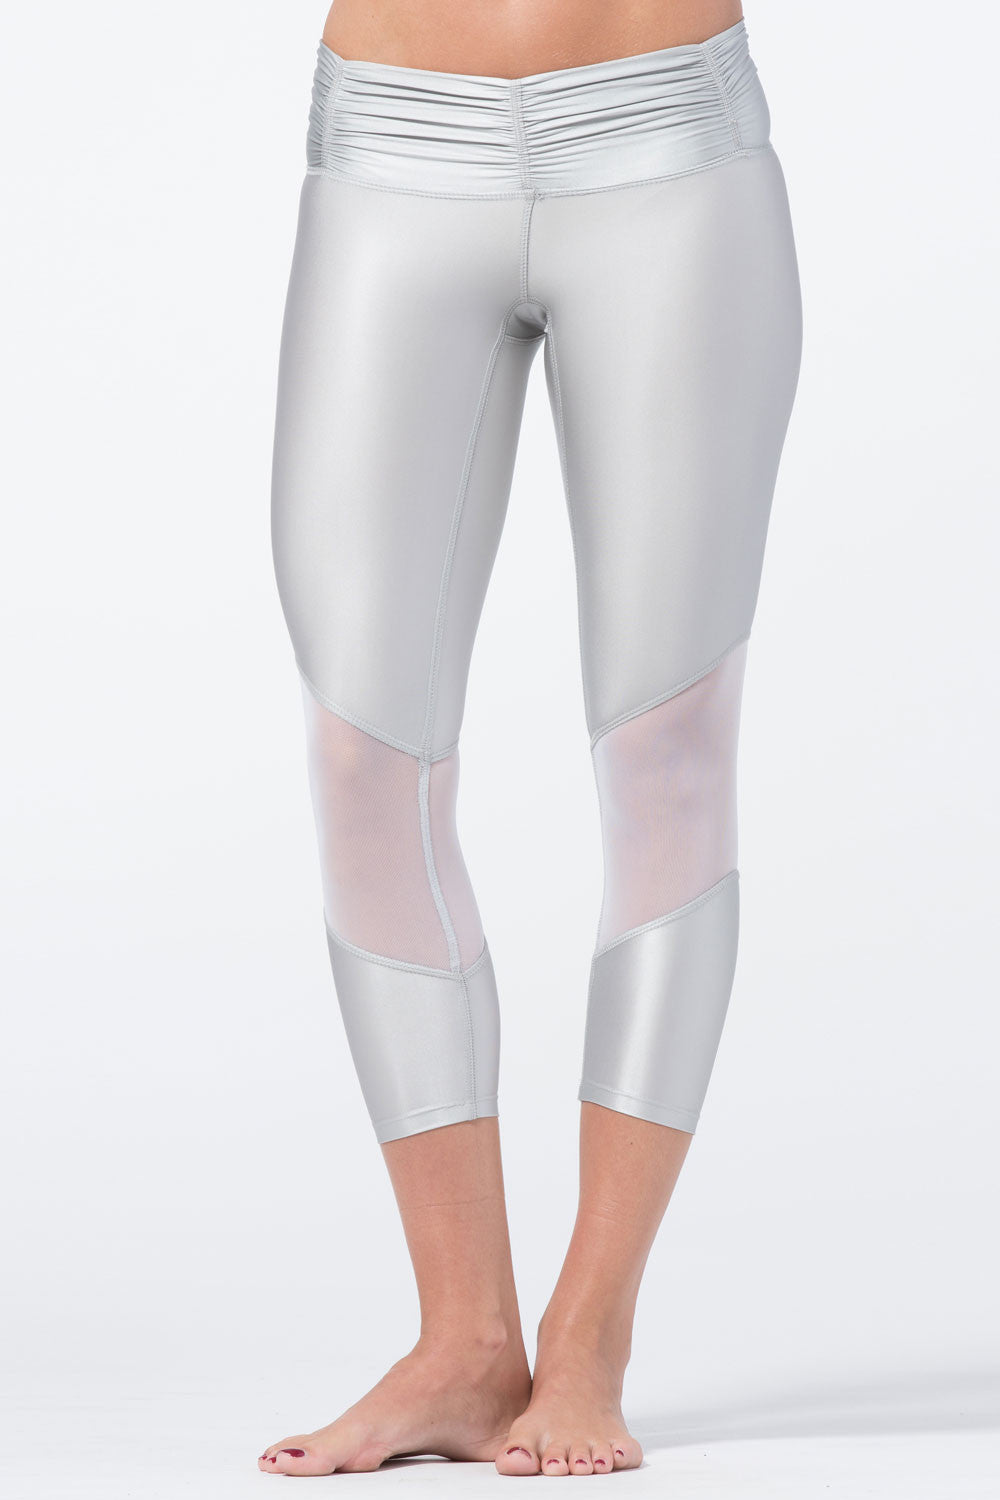 Chill by Will Love Crop - Silver - Sculptique